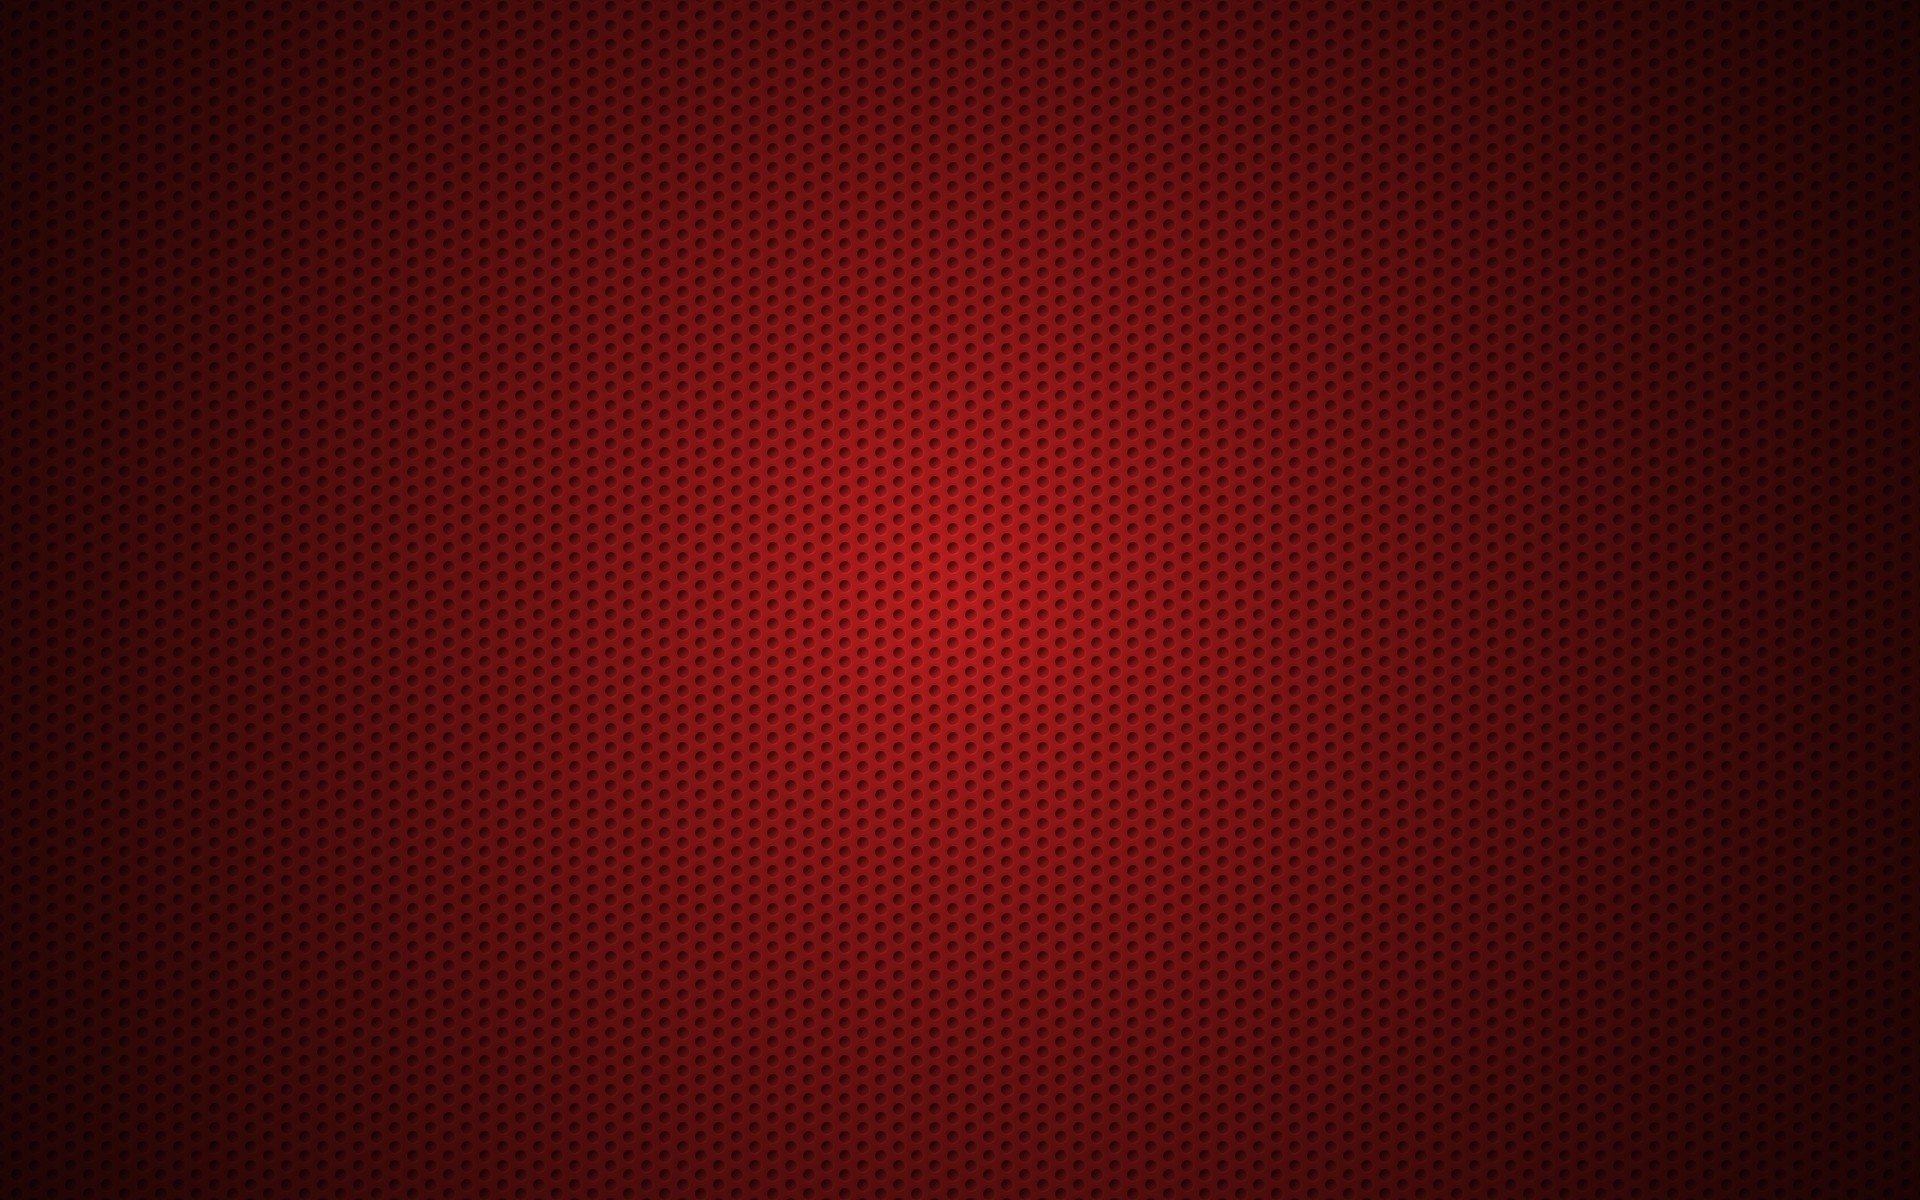 Red Textured Wallpapers WallpaperPulse 1920×1200 Red textured wallpaper (32  Wallpapers)   Adorable